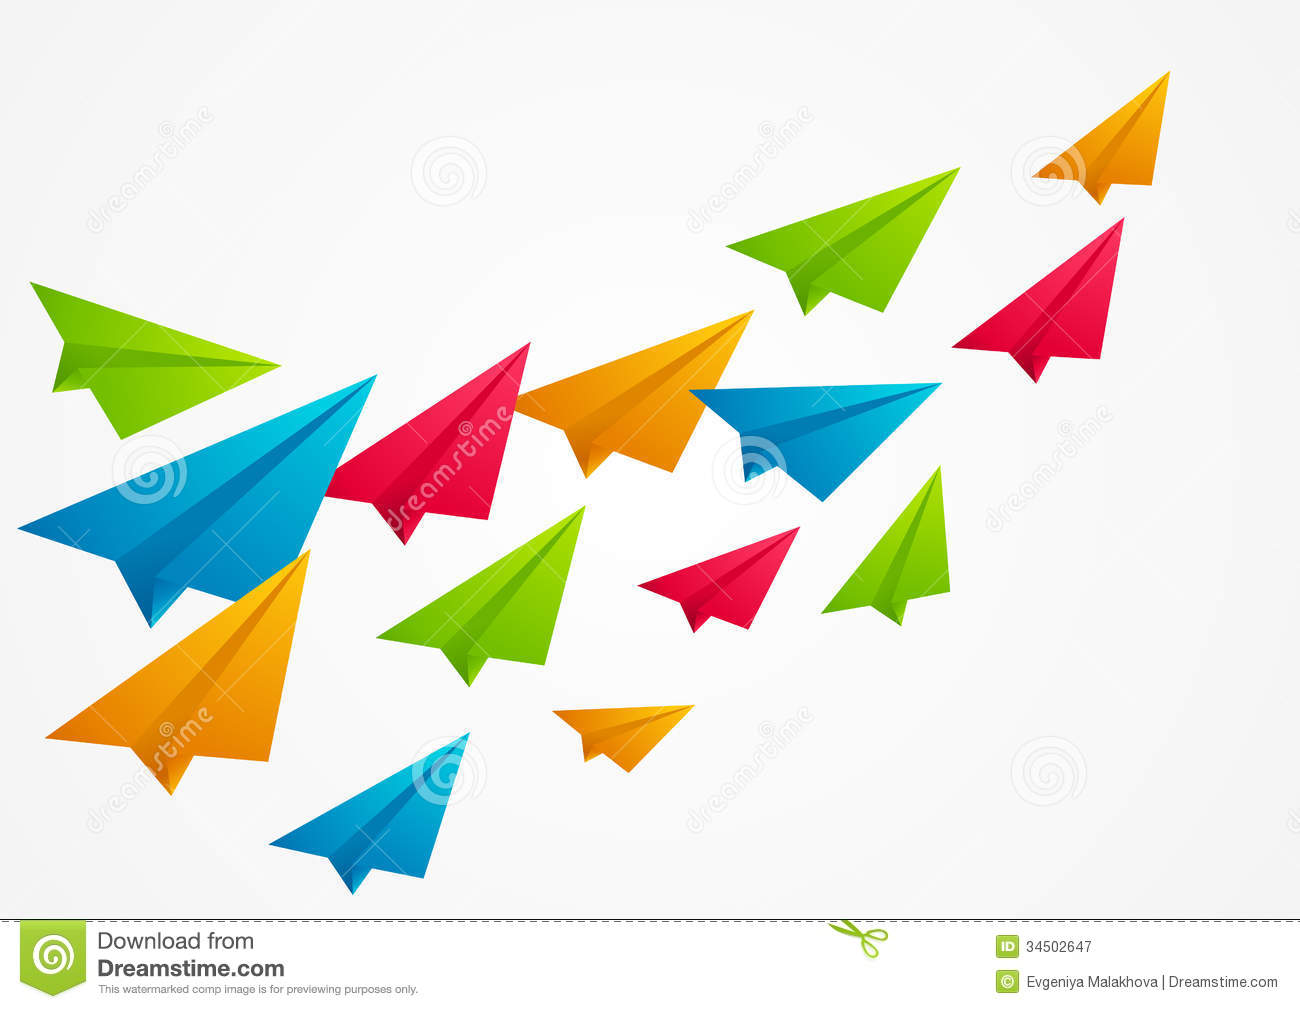 Color Paper Airplanes Royalty Free Stock Photography - Image: 34502647